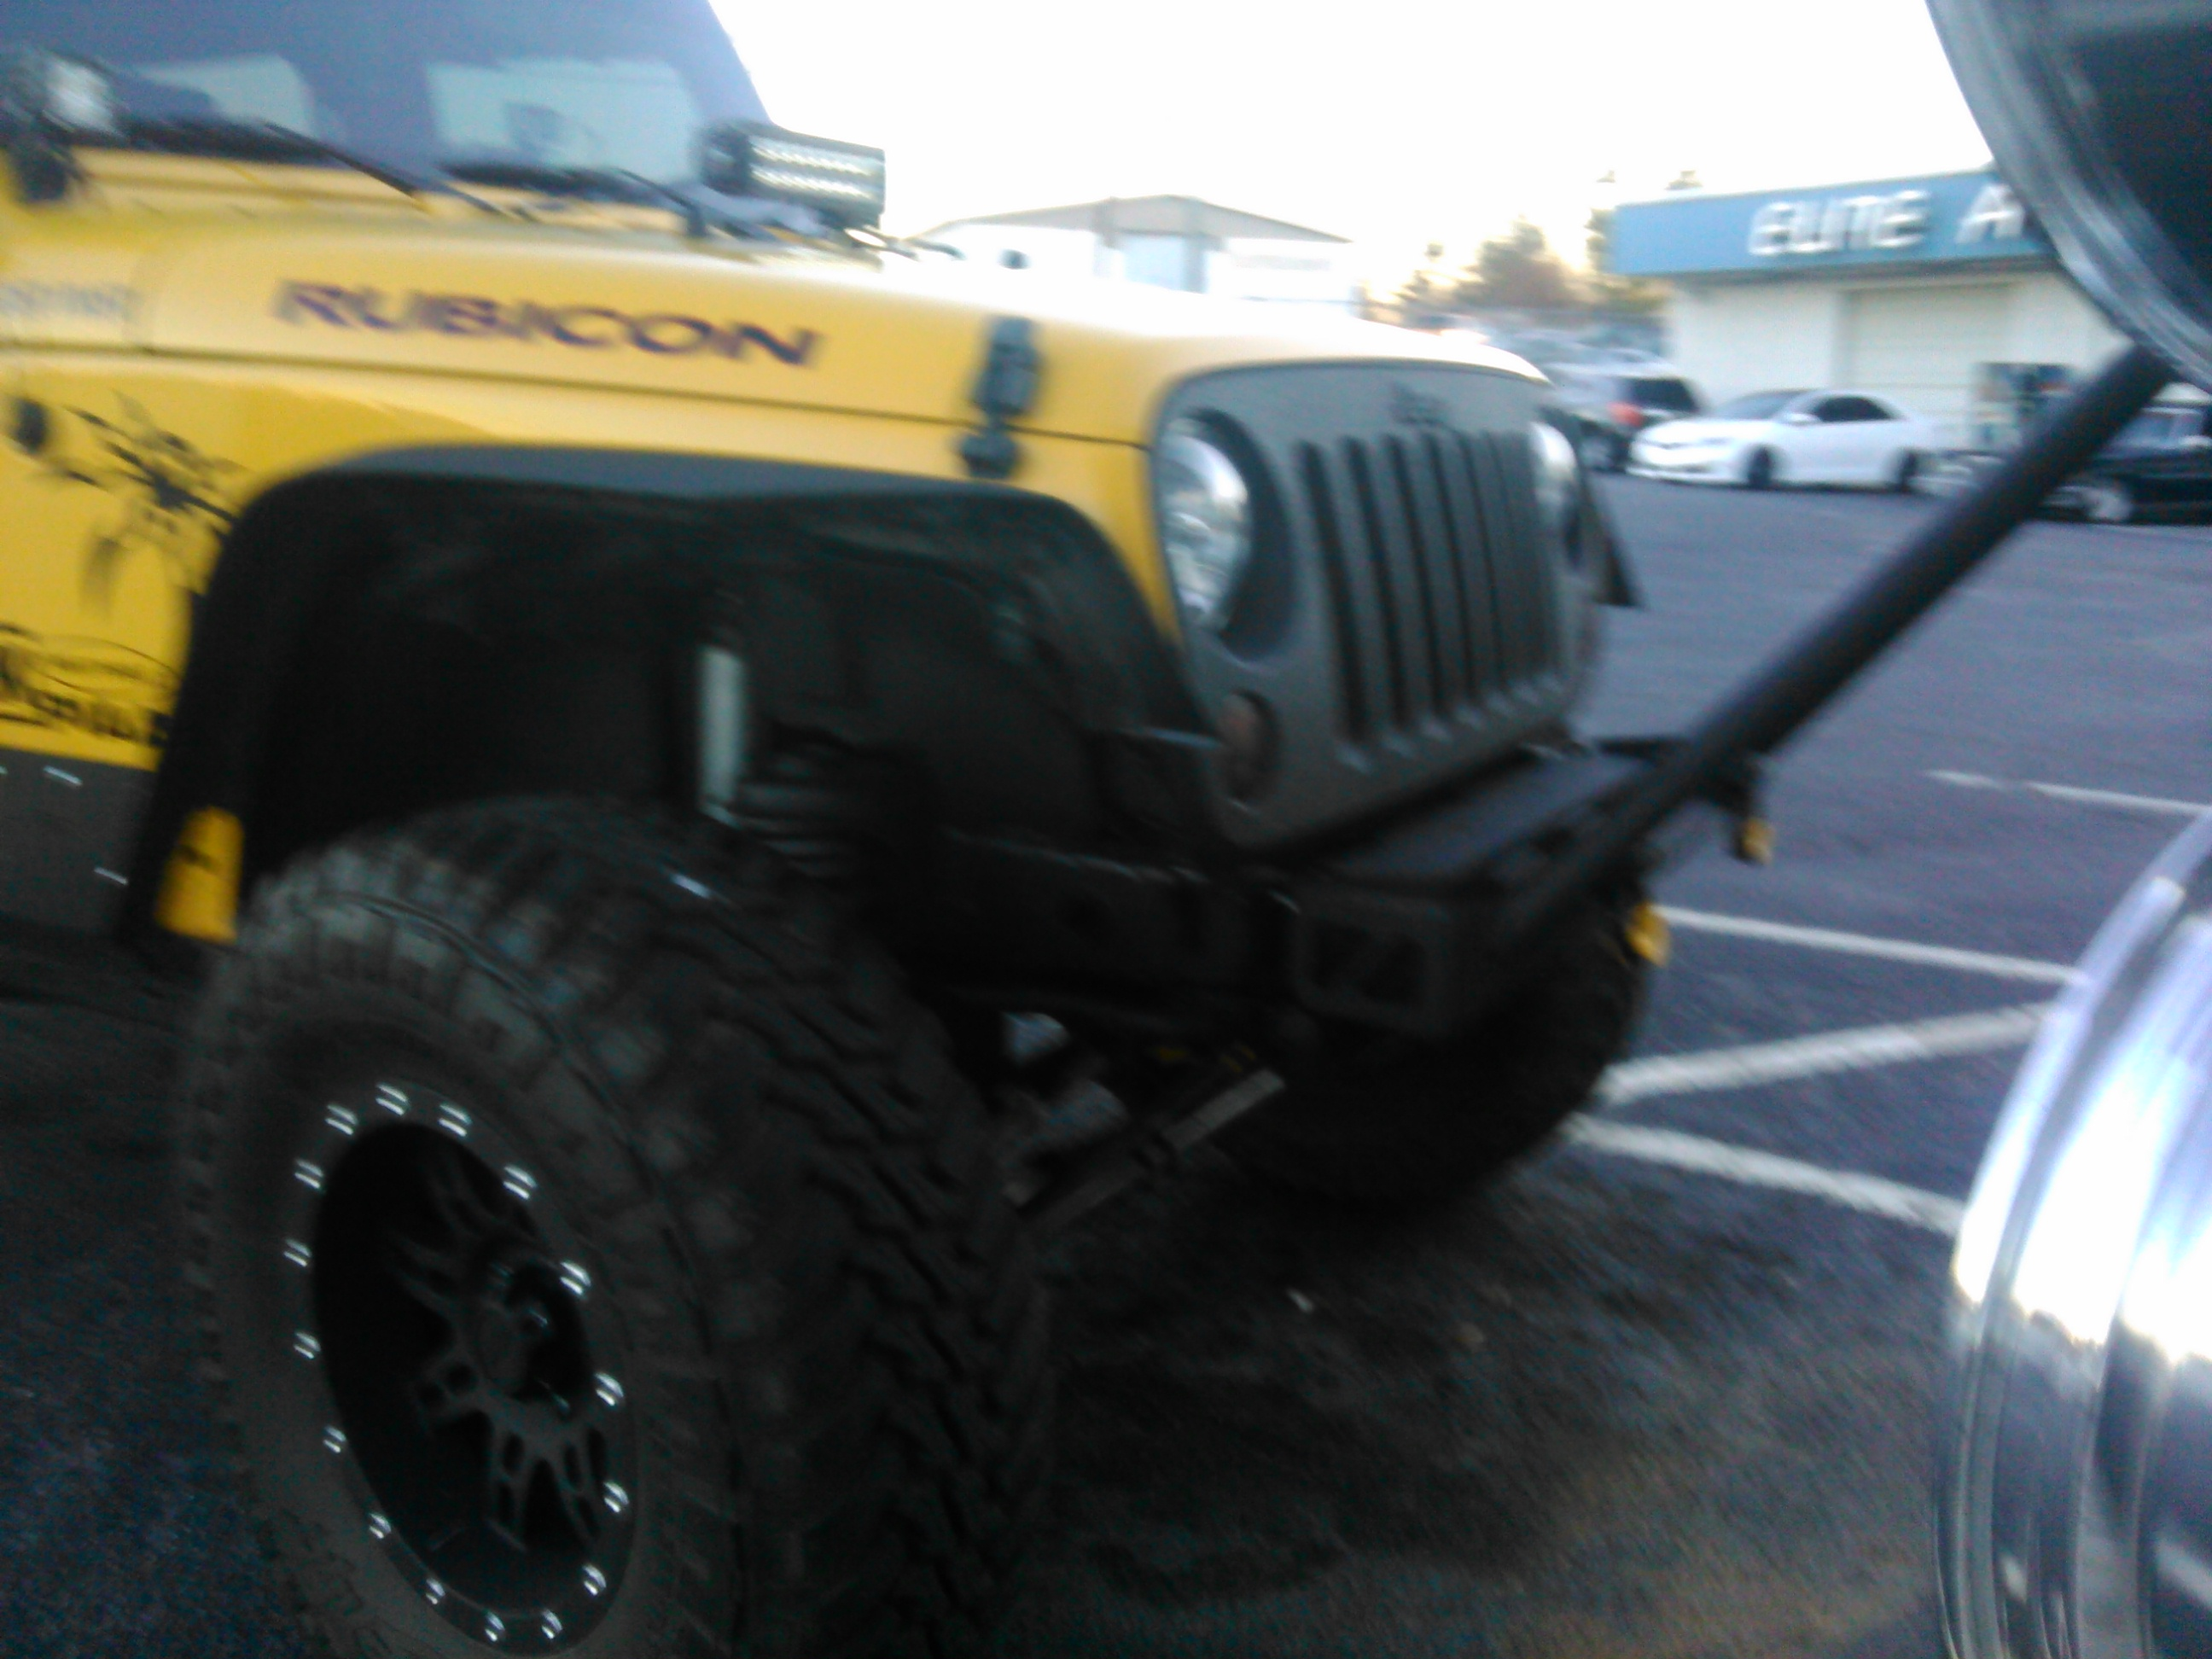 jokeriron's 2010 Jeep Rubicon